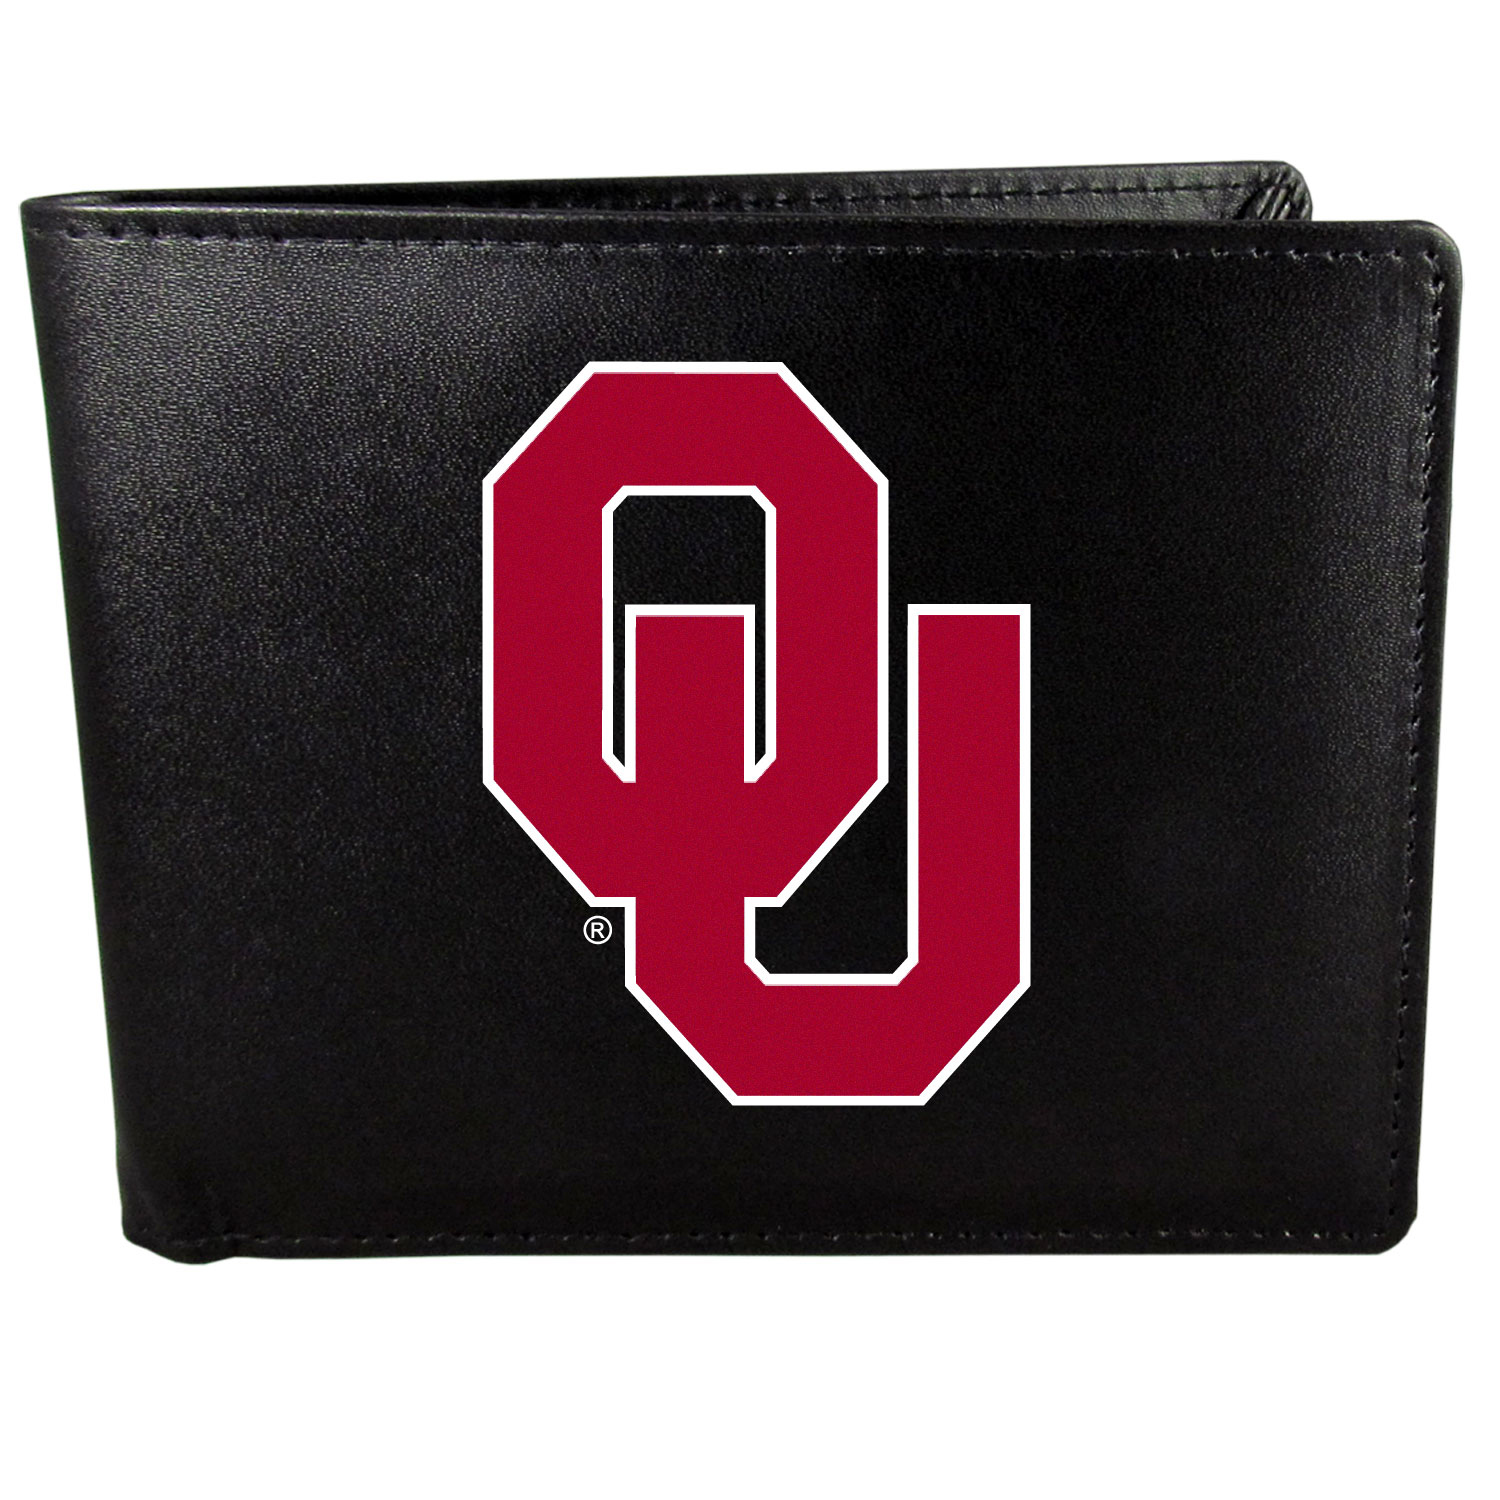 Oklahoma Sooners Leather Bi-fold Wallet, Large Logo - Our classic fine leather bi-fold wallet is meticulously crafted with genuine leather that will age beautifully so you will have a quality wallet for years to come. The wallet opens to a large, billfold pocket and numerous credit card slots and has a convenient windowed ID slot. The front of the wallet features an extra large Oklahoma Sooners printed logo.